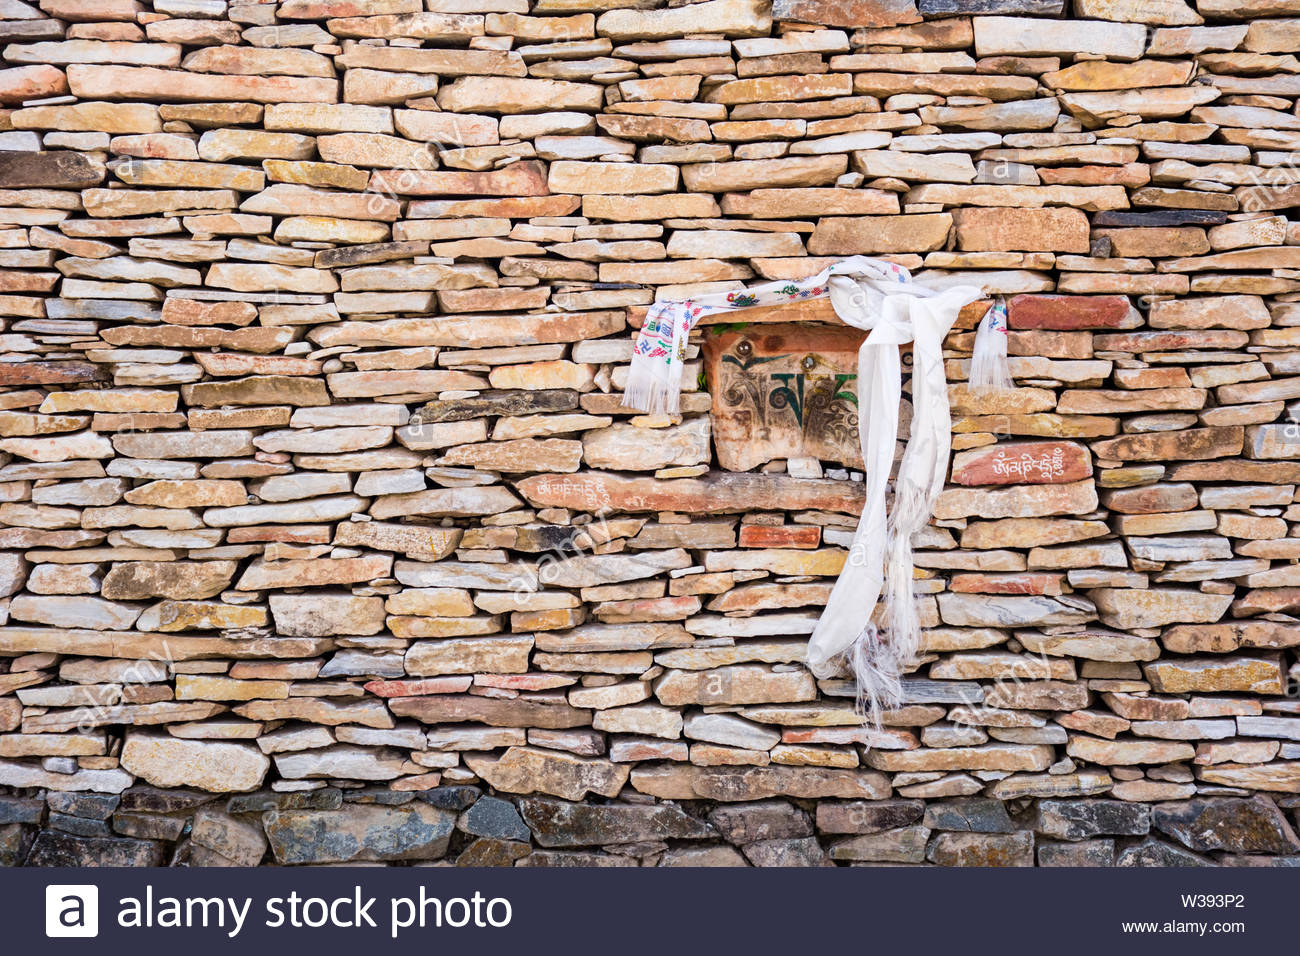 Detail of the Largest Mani Stone Mound In The World built with more than 200 million Mani stones, Yushu Tibetan autonomous prefecture, Qinghai, China, - Stock Image